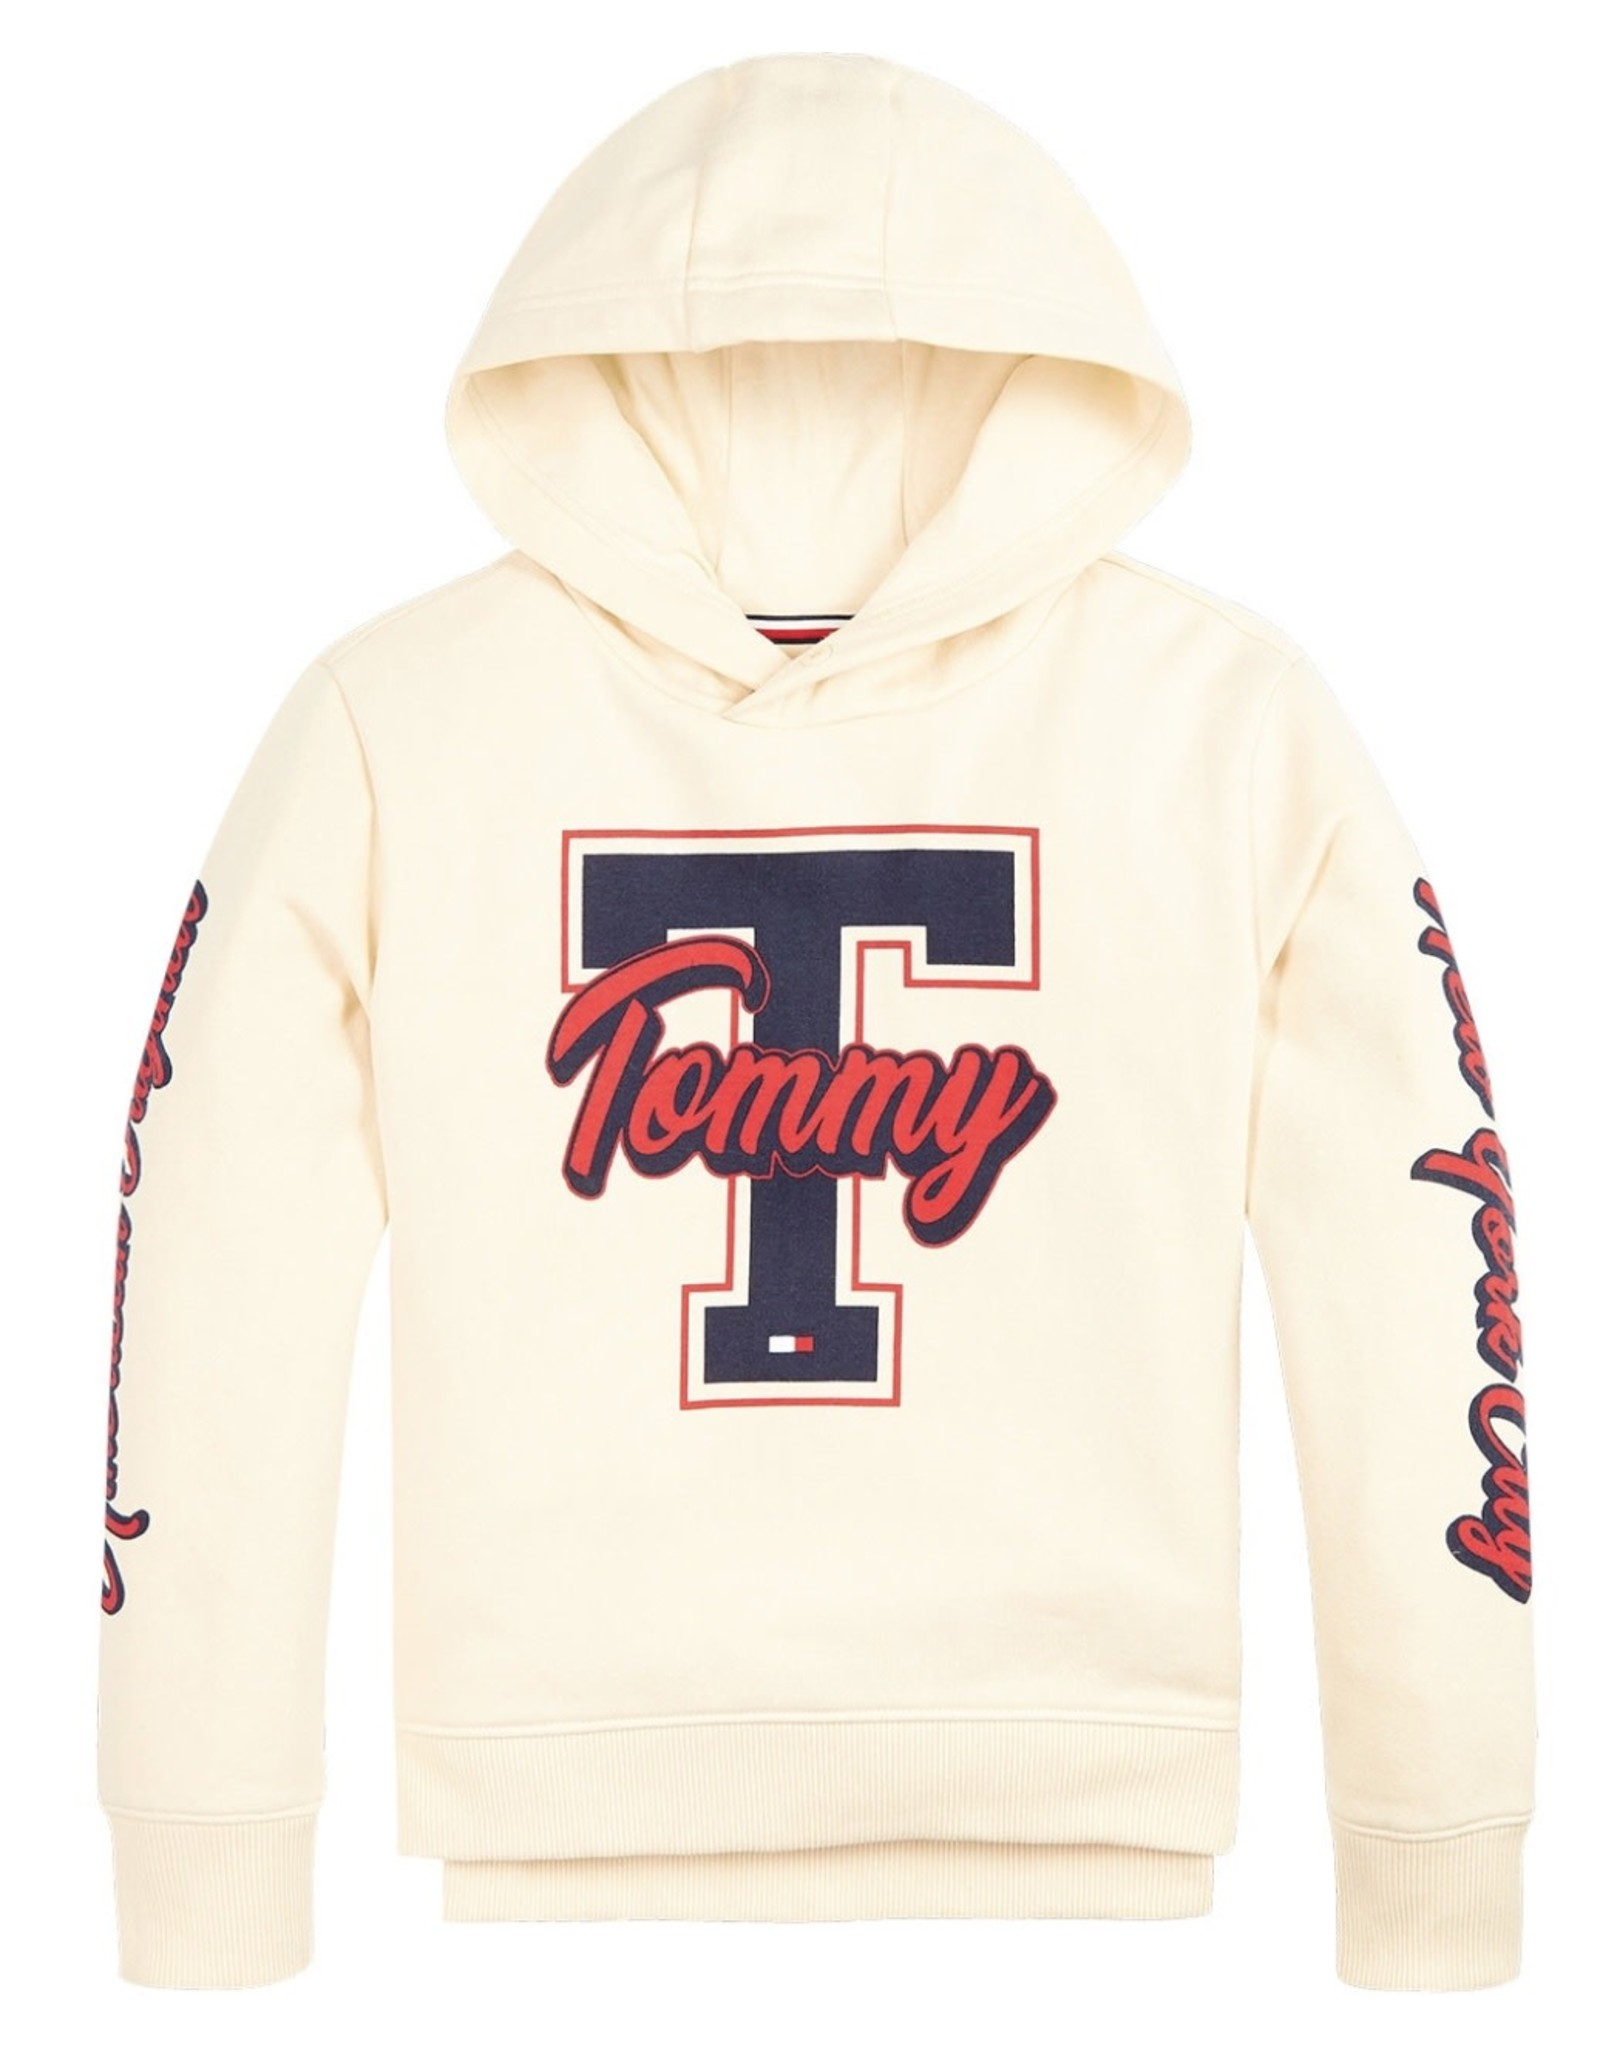 Tommy Hilfiger 6146 sweater hoody